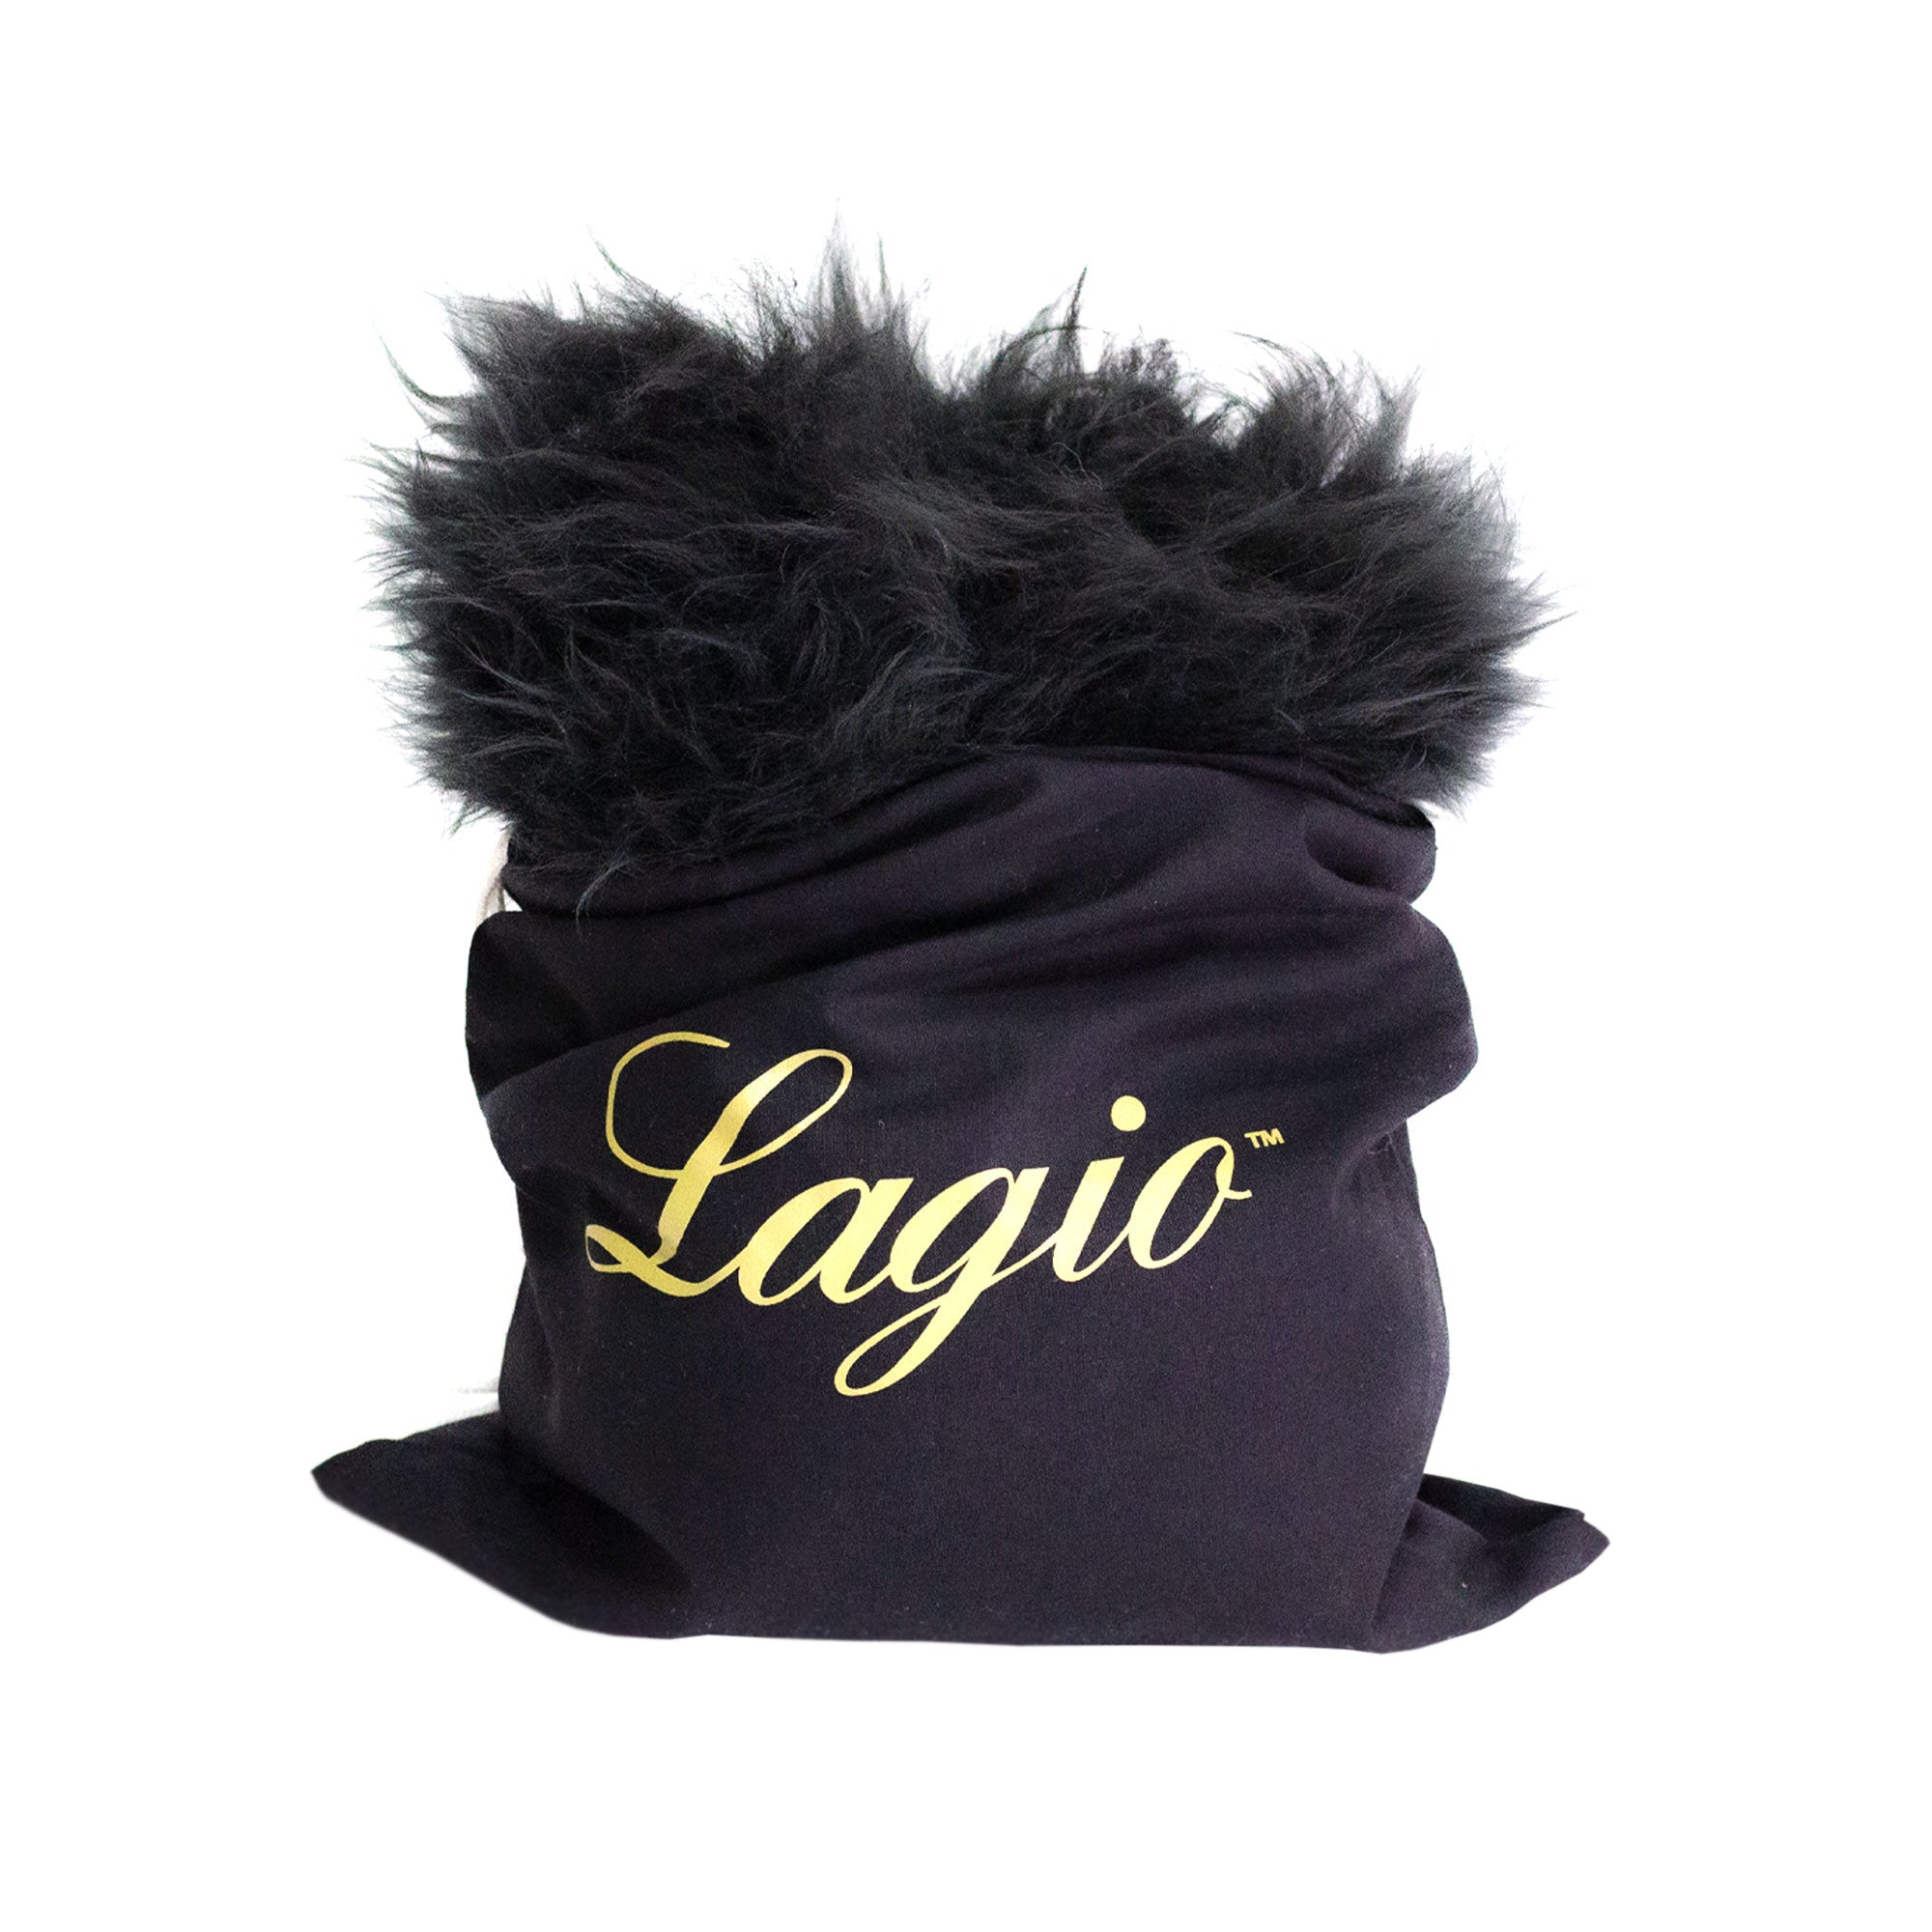 Lagio Comfort Webbing For Fond Members